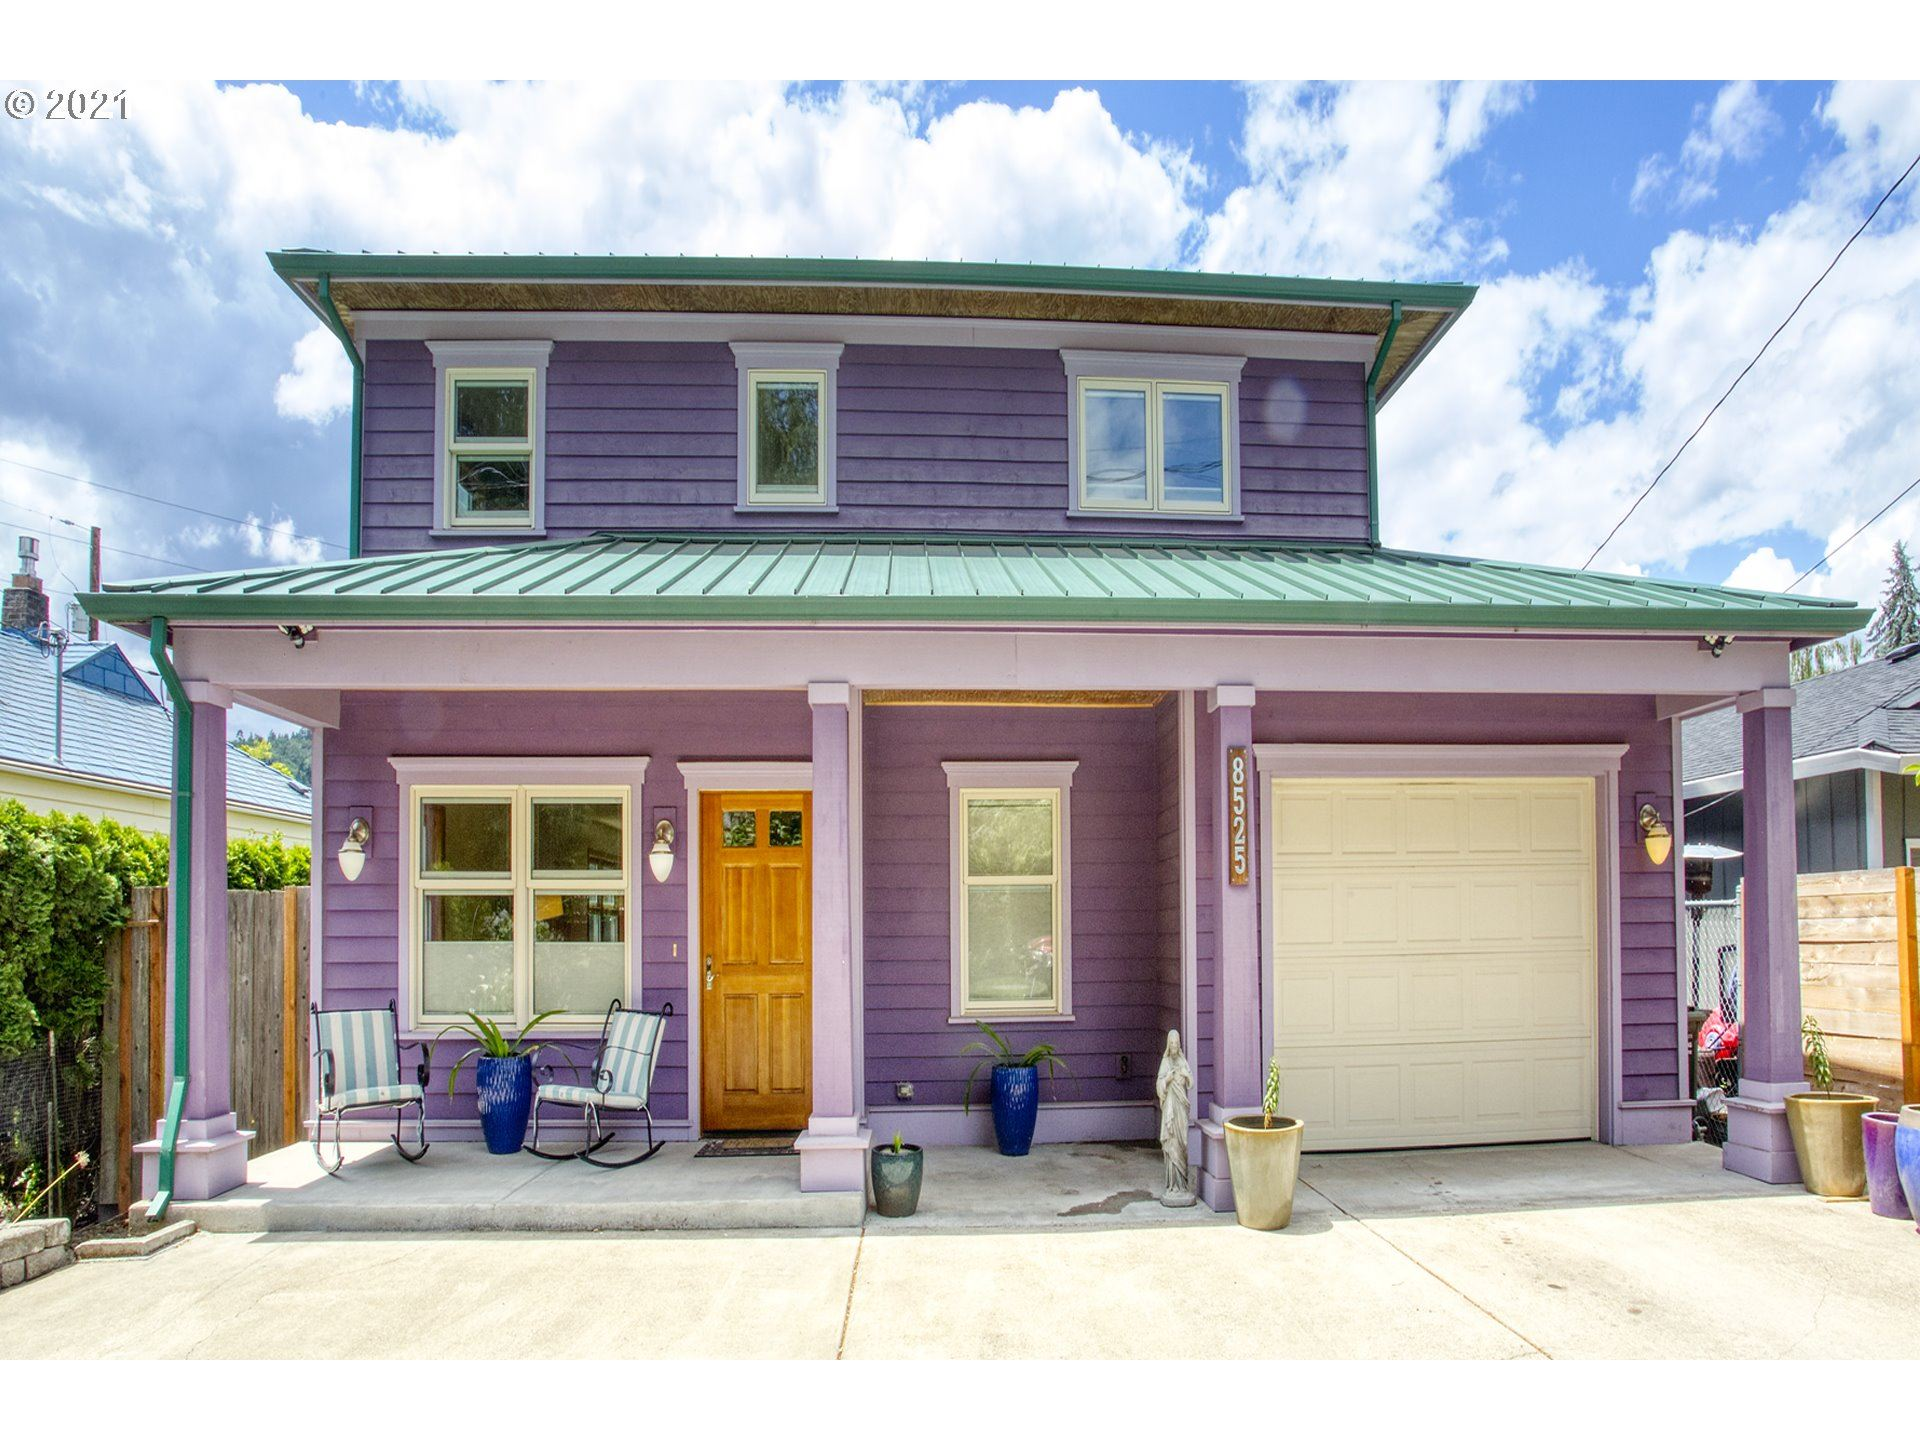 8525 SE 8TH AVE, Portland, OR 97202 - MLS#: 21573511